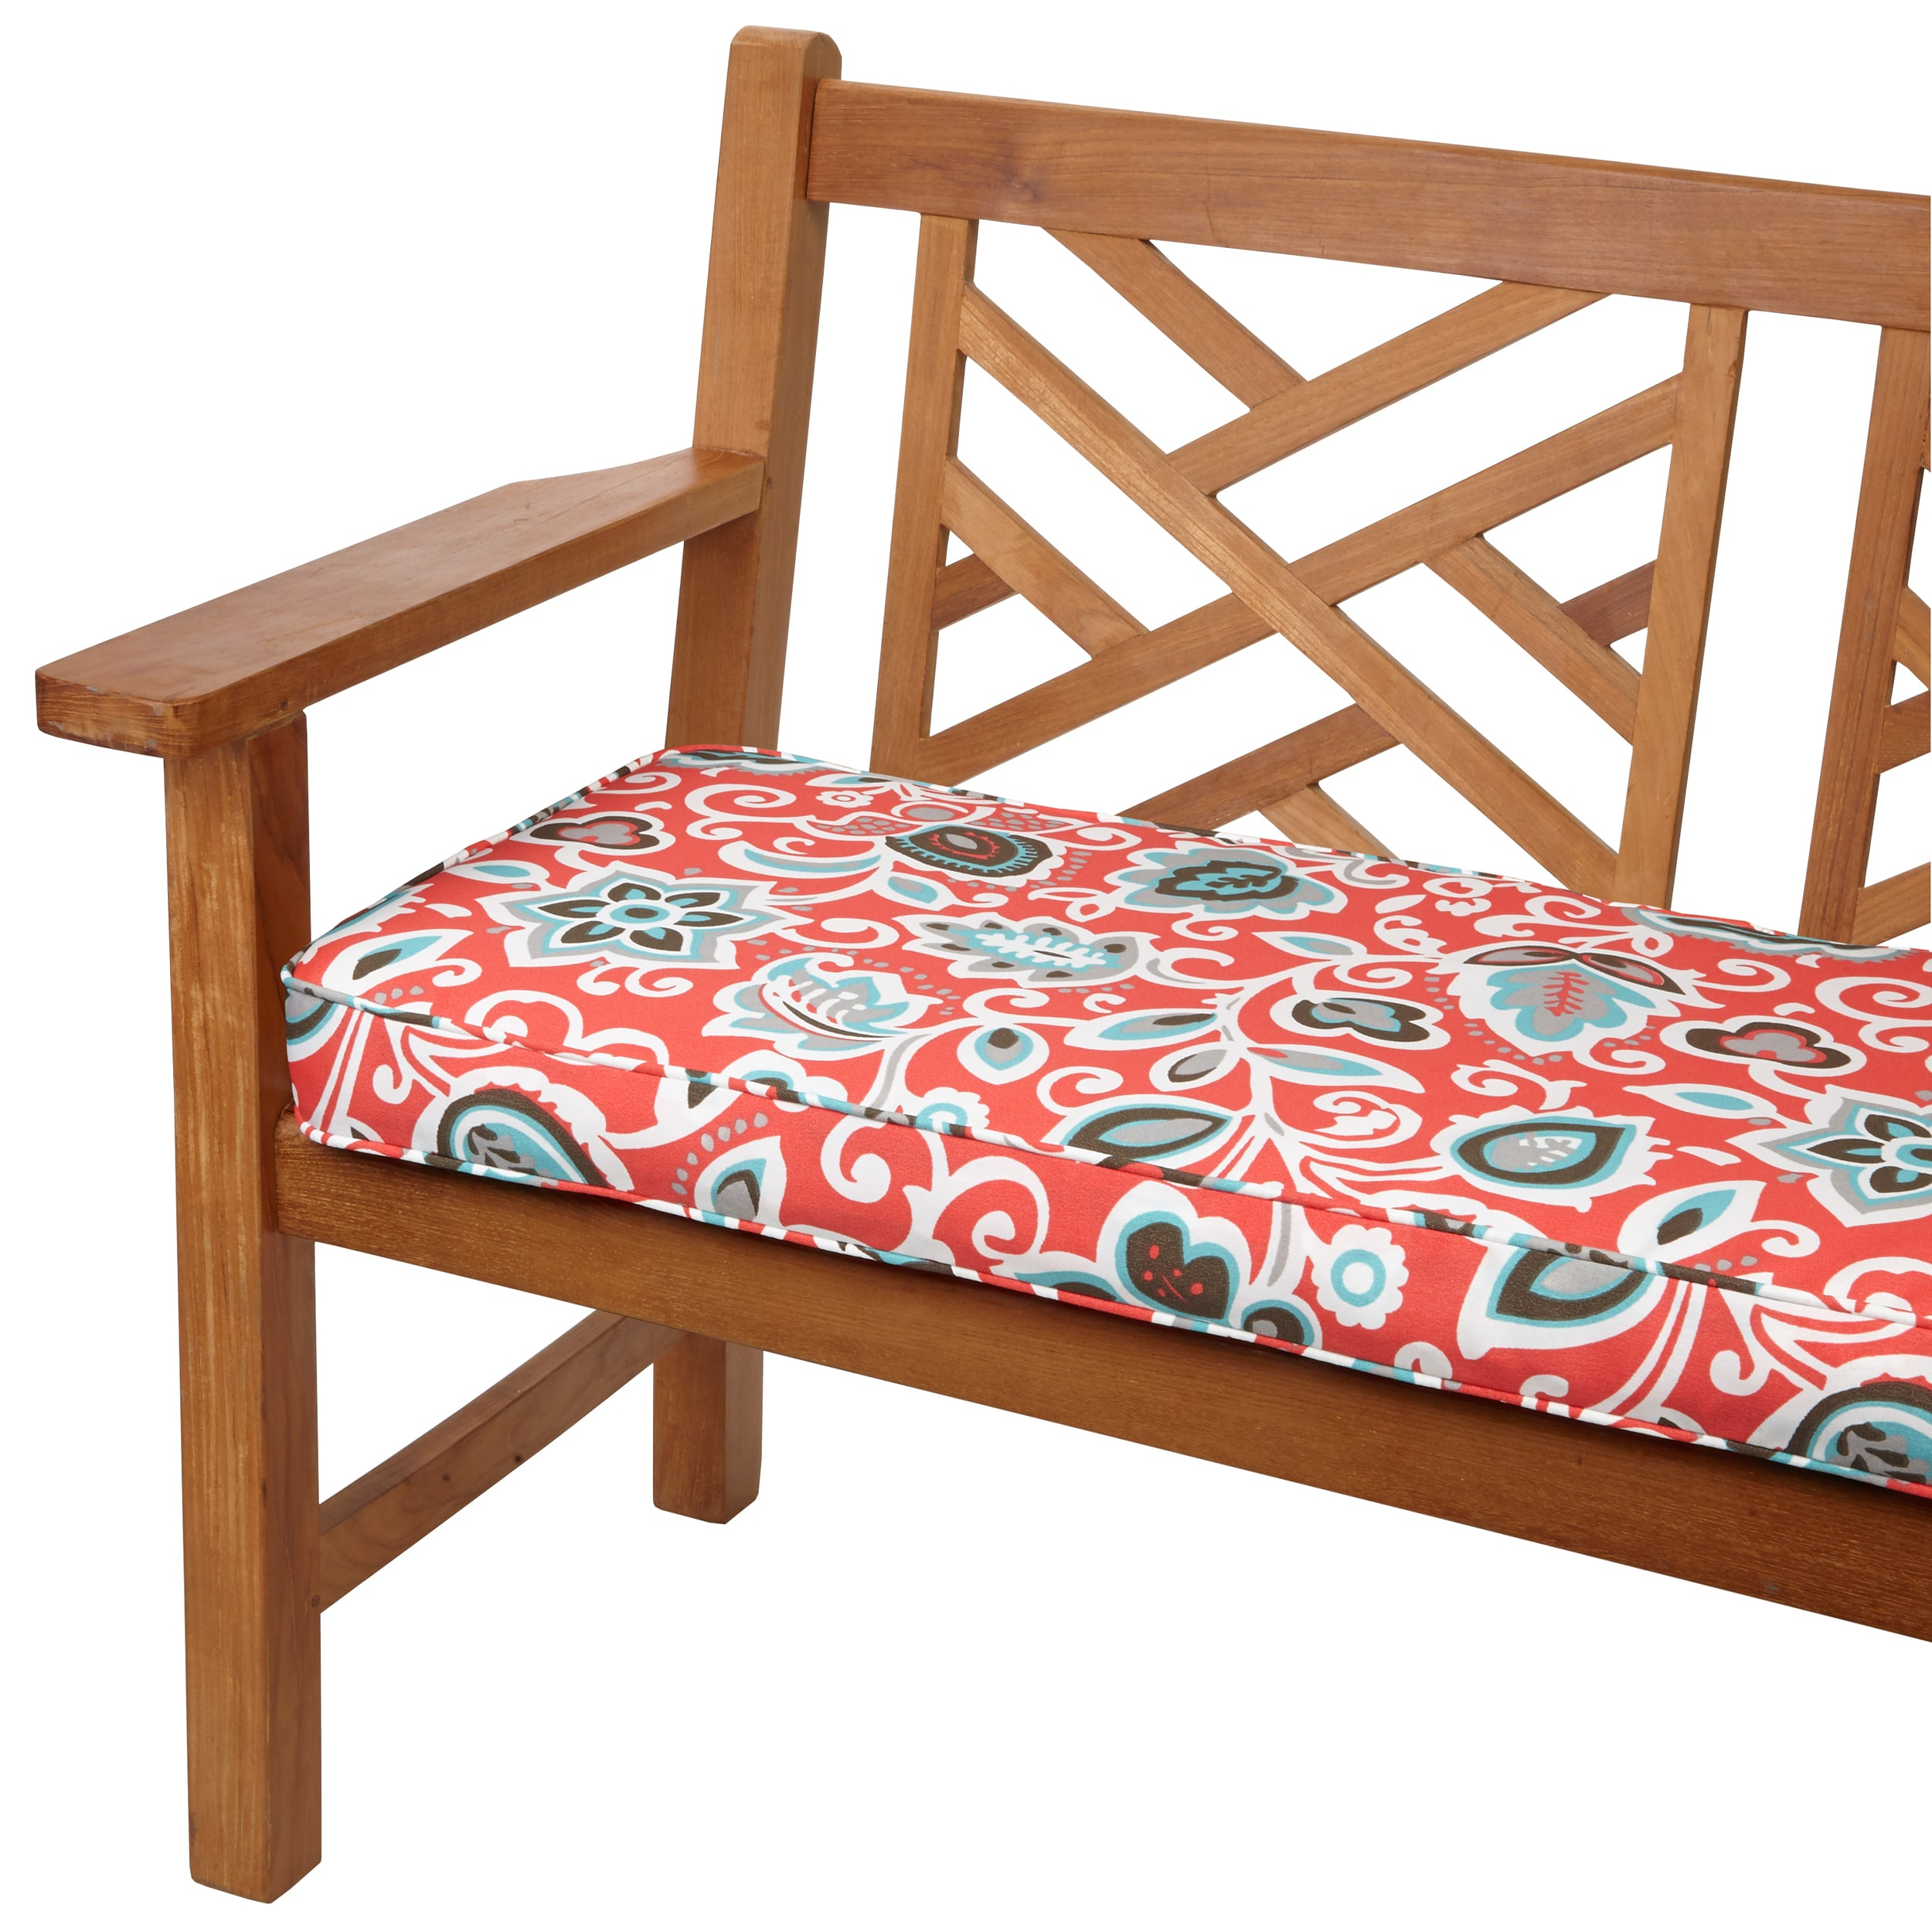 Floral Coral 48-inch Indoor/ Outdoor Corded Bench Cushion at Sears.com